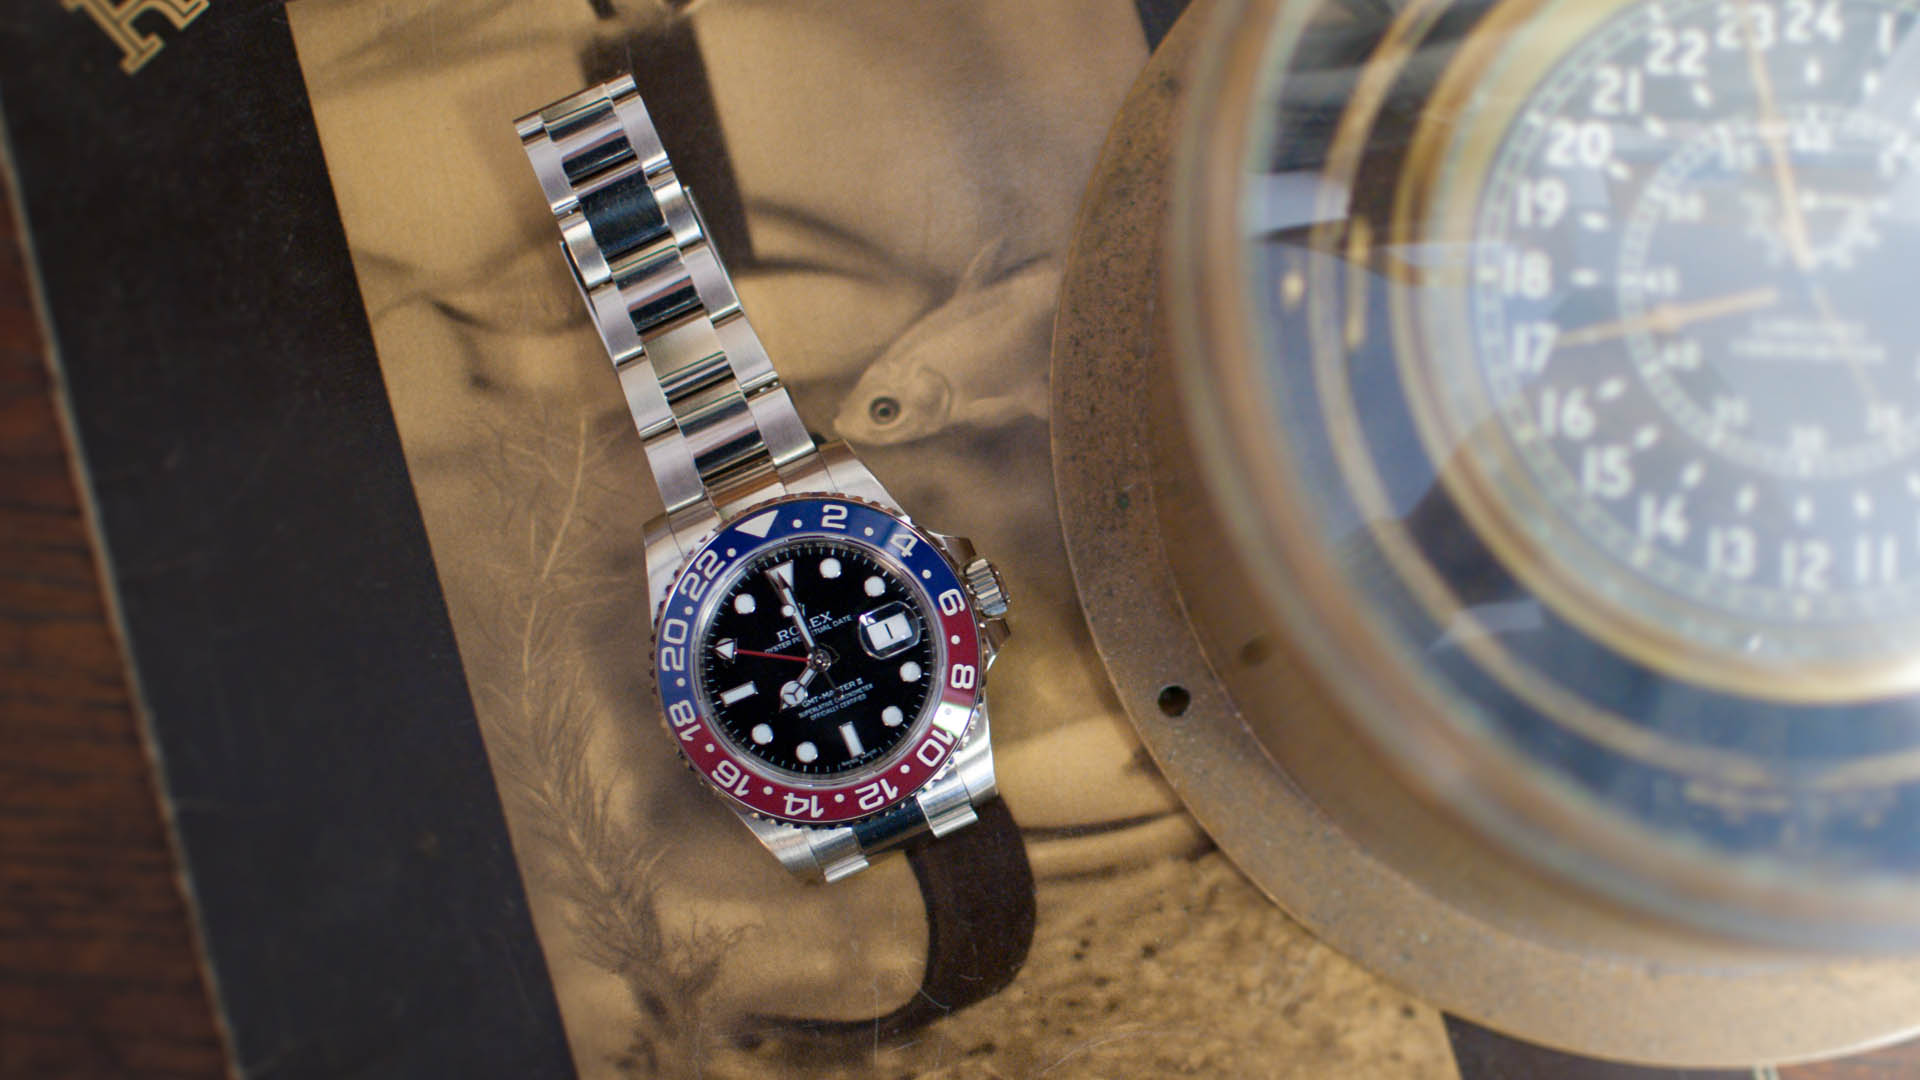 FINE WATCHES, AFFORDABLE